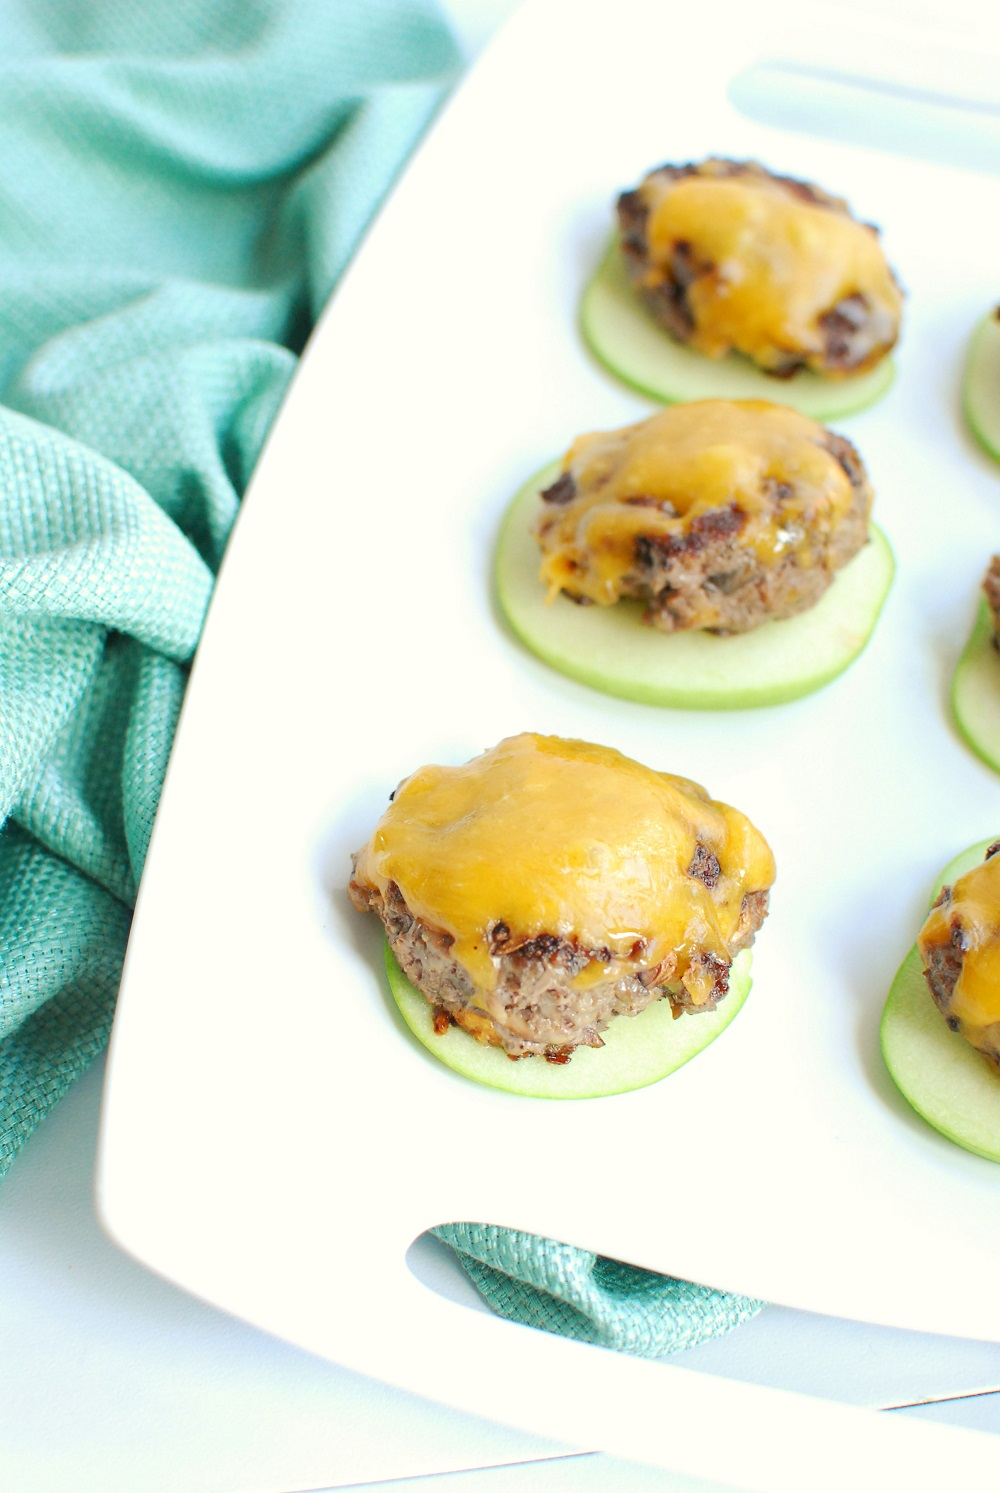 blended beef and mushroom sliders with apple buns